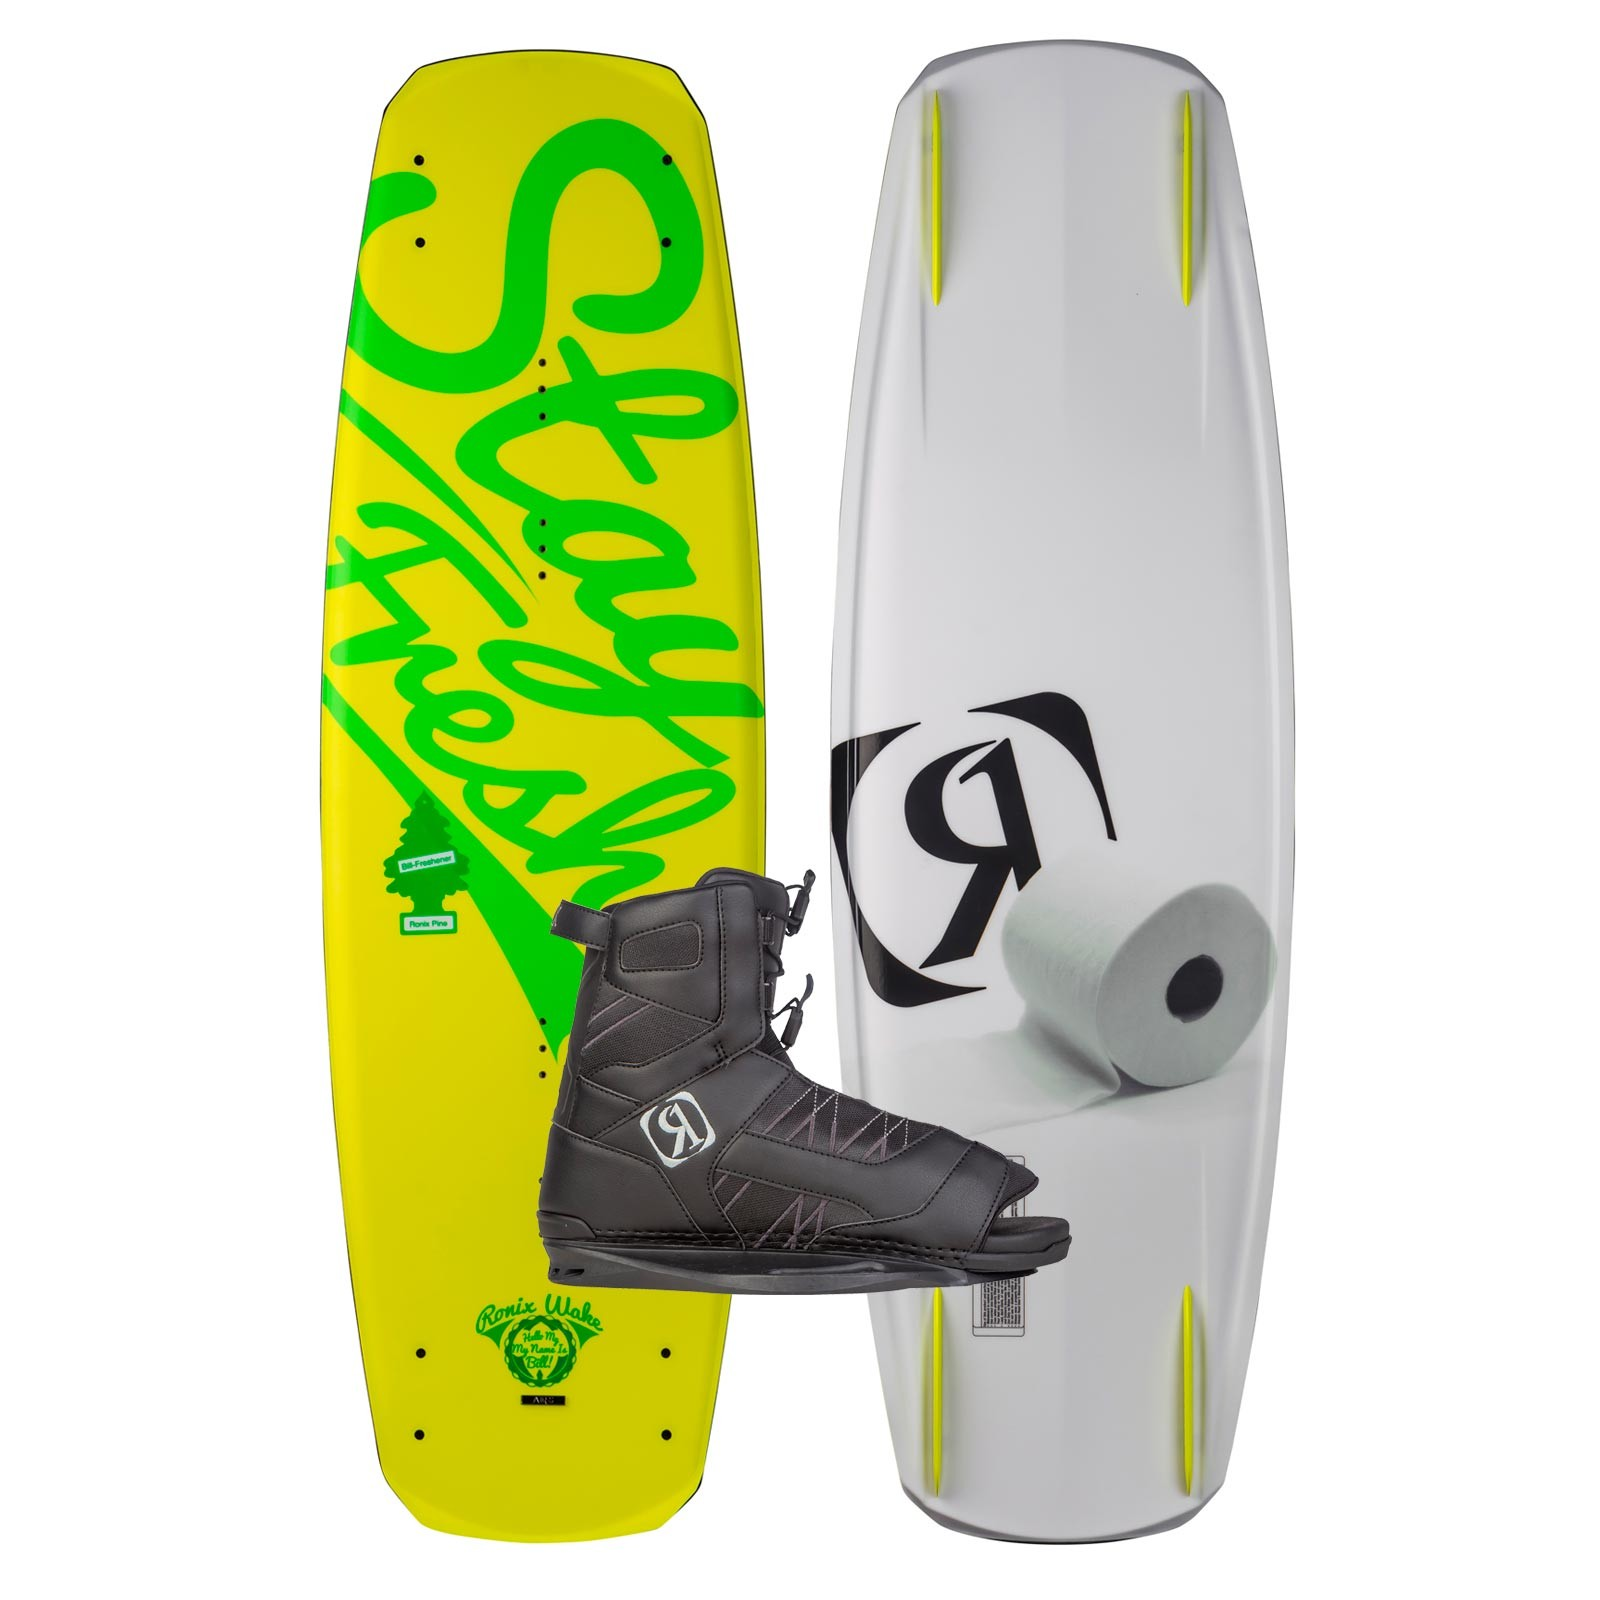 2016 RONIX BILL W/DIVIDE HYBRID PACKAGE